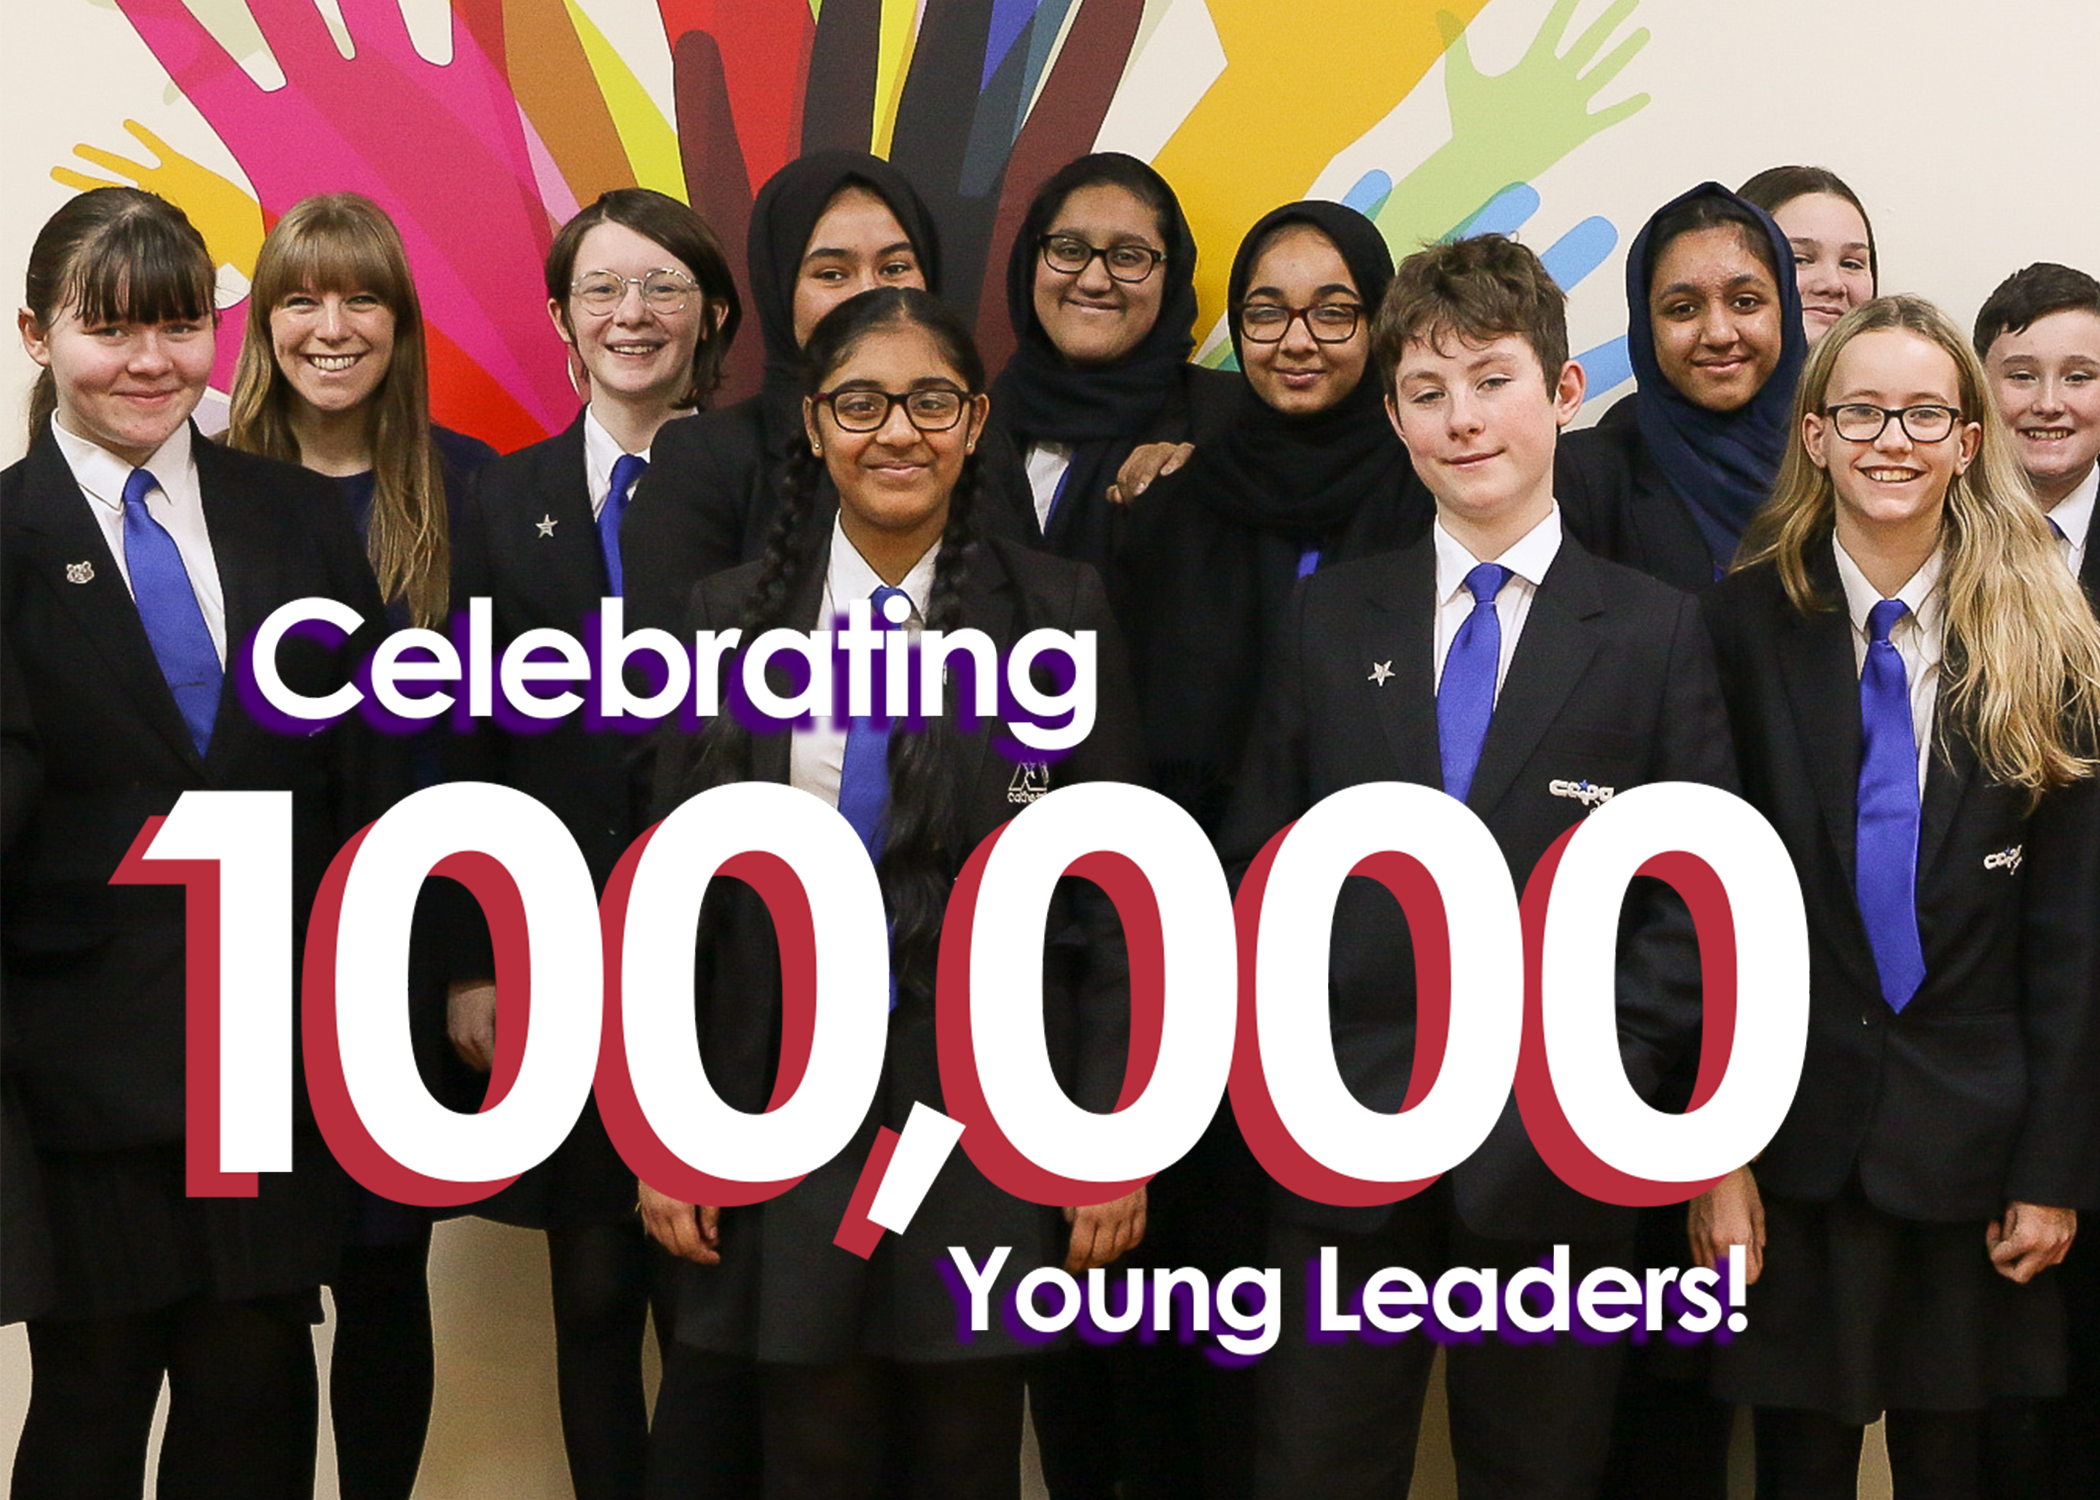 Celebrating 100,000 Young Leaders!